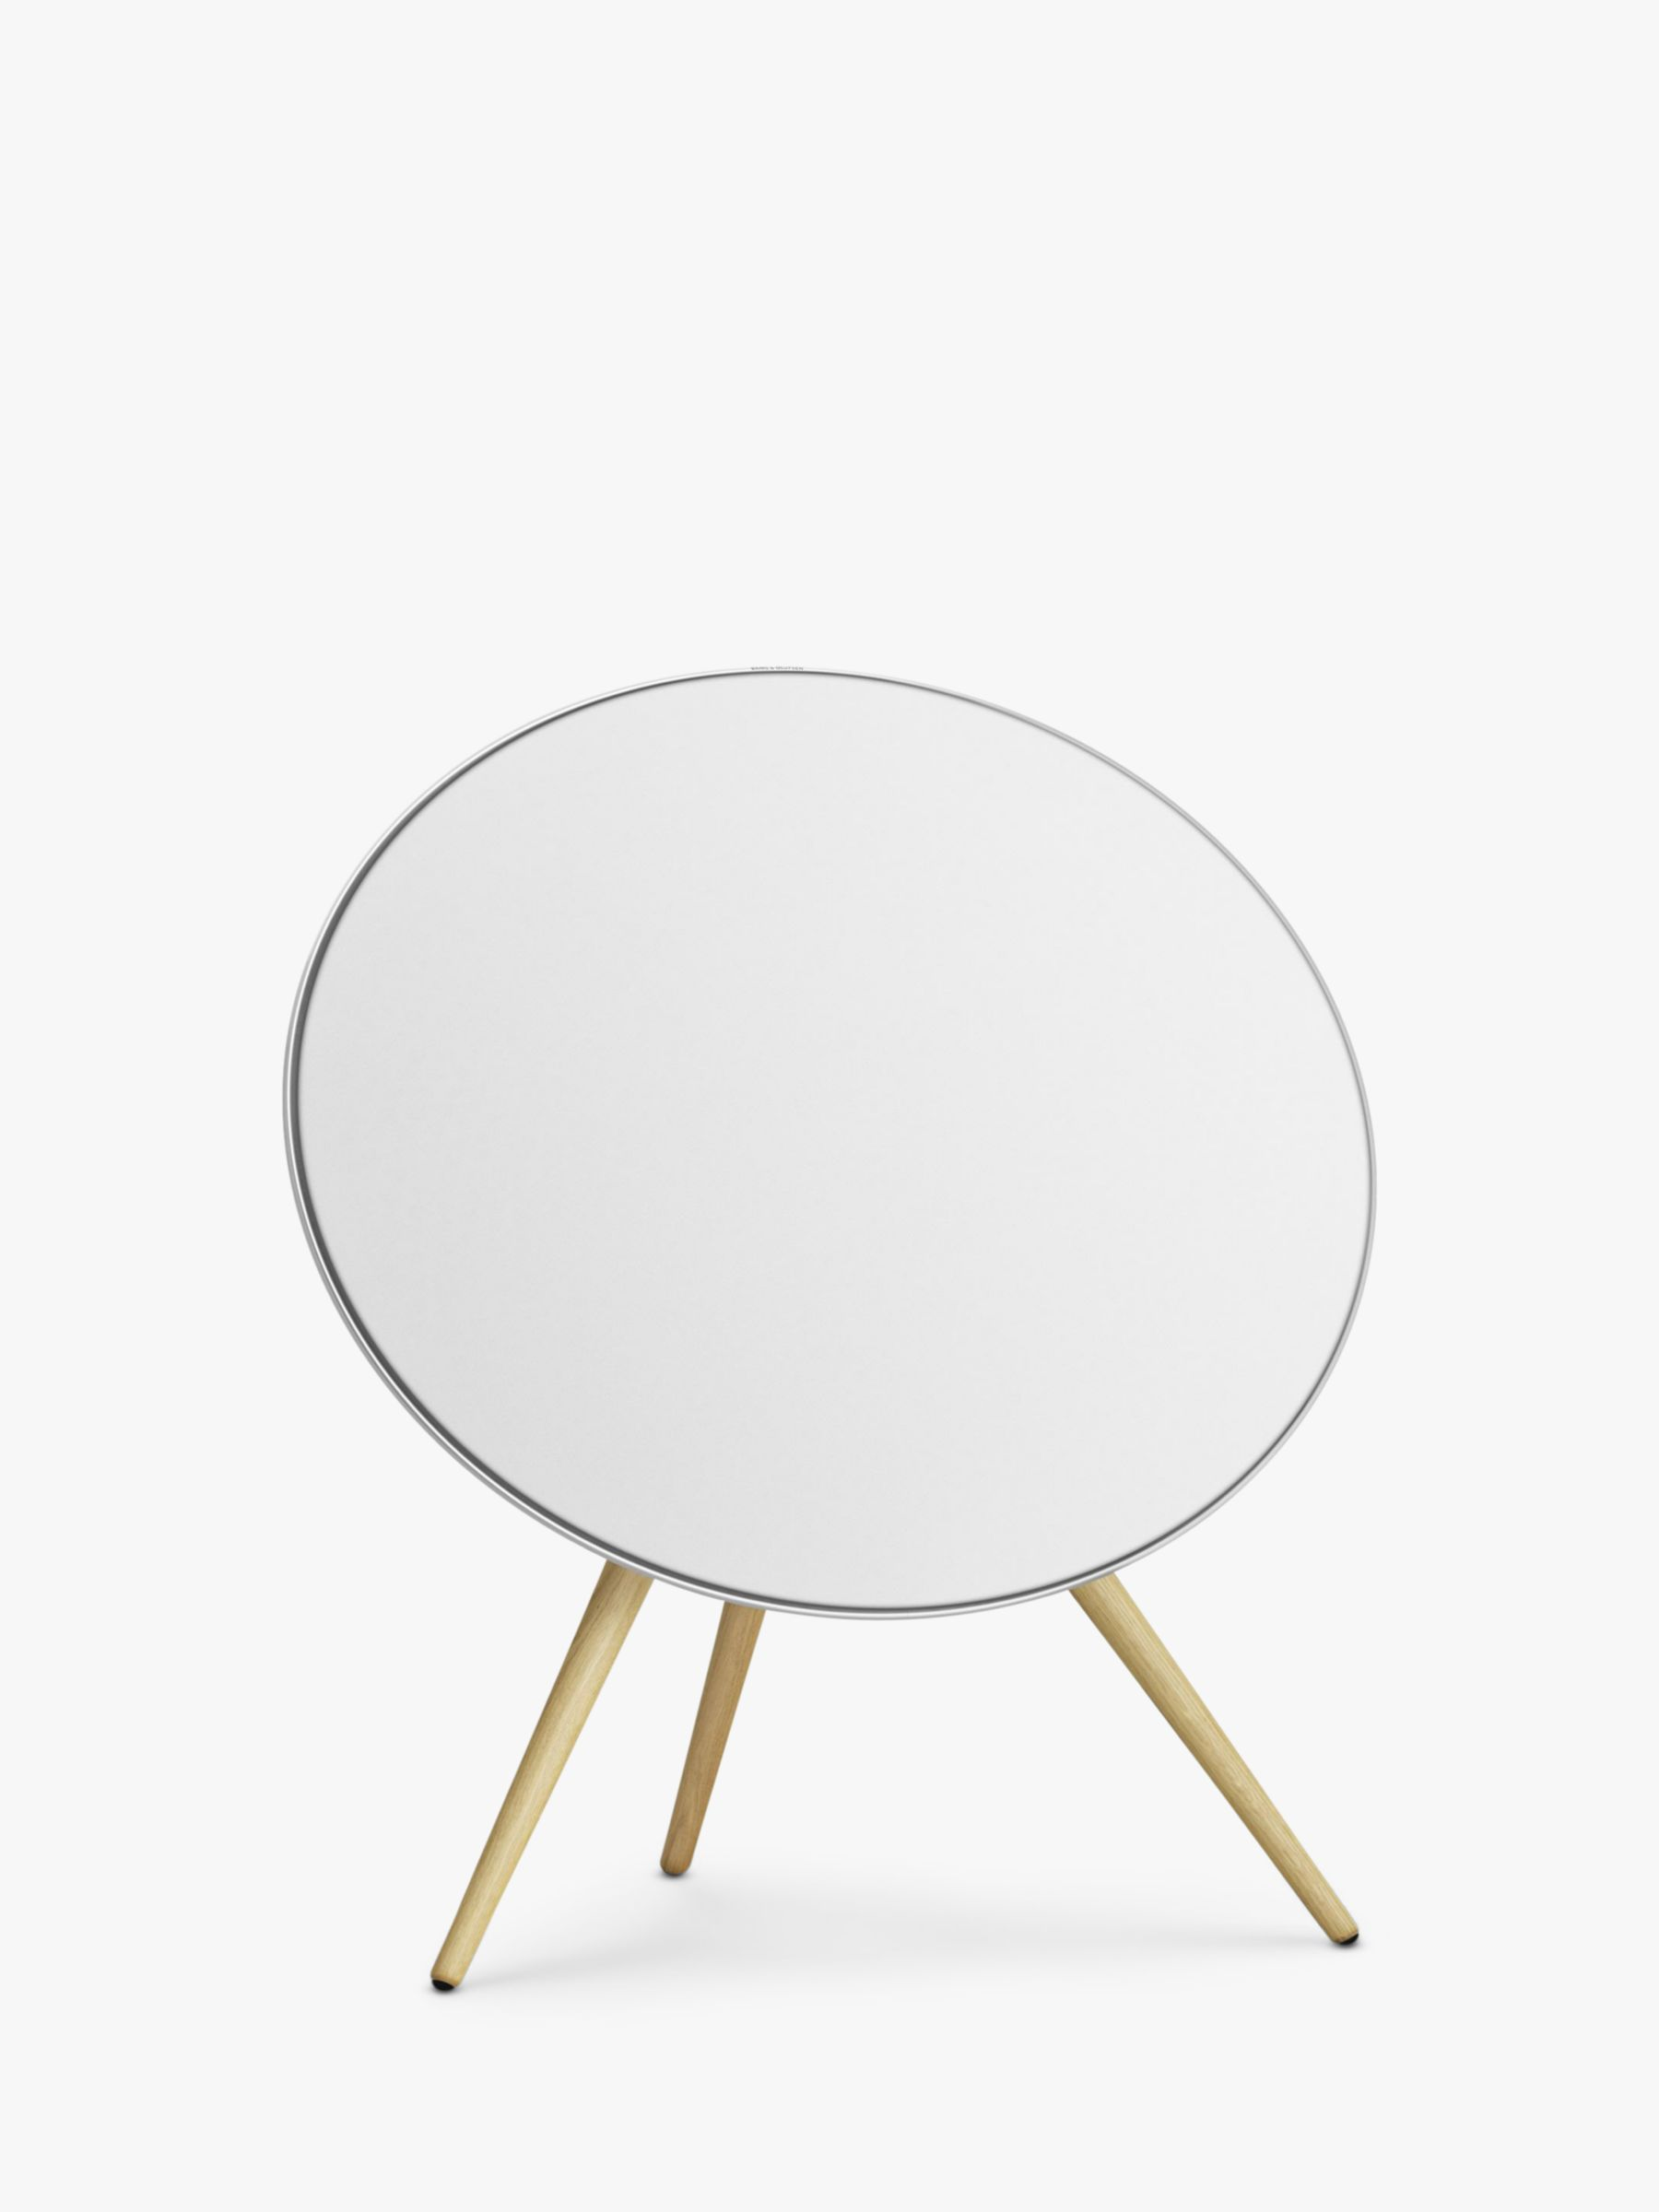 Bang & Olufsen Bang & Olufsen Beoplay A9 (4th Generation) Wi-Fi Bluetooth Music System with Airplay 2, Chromecast Built-In & the Google Assistant